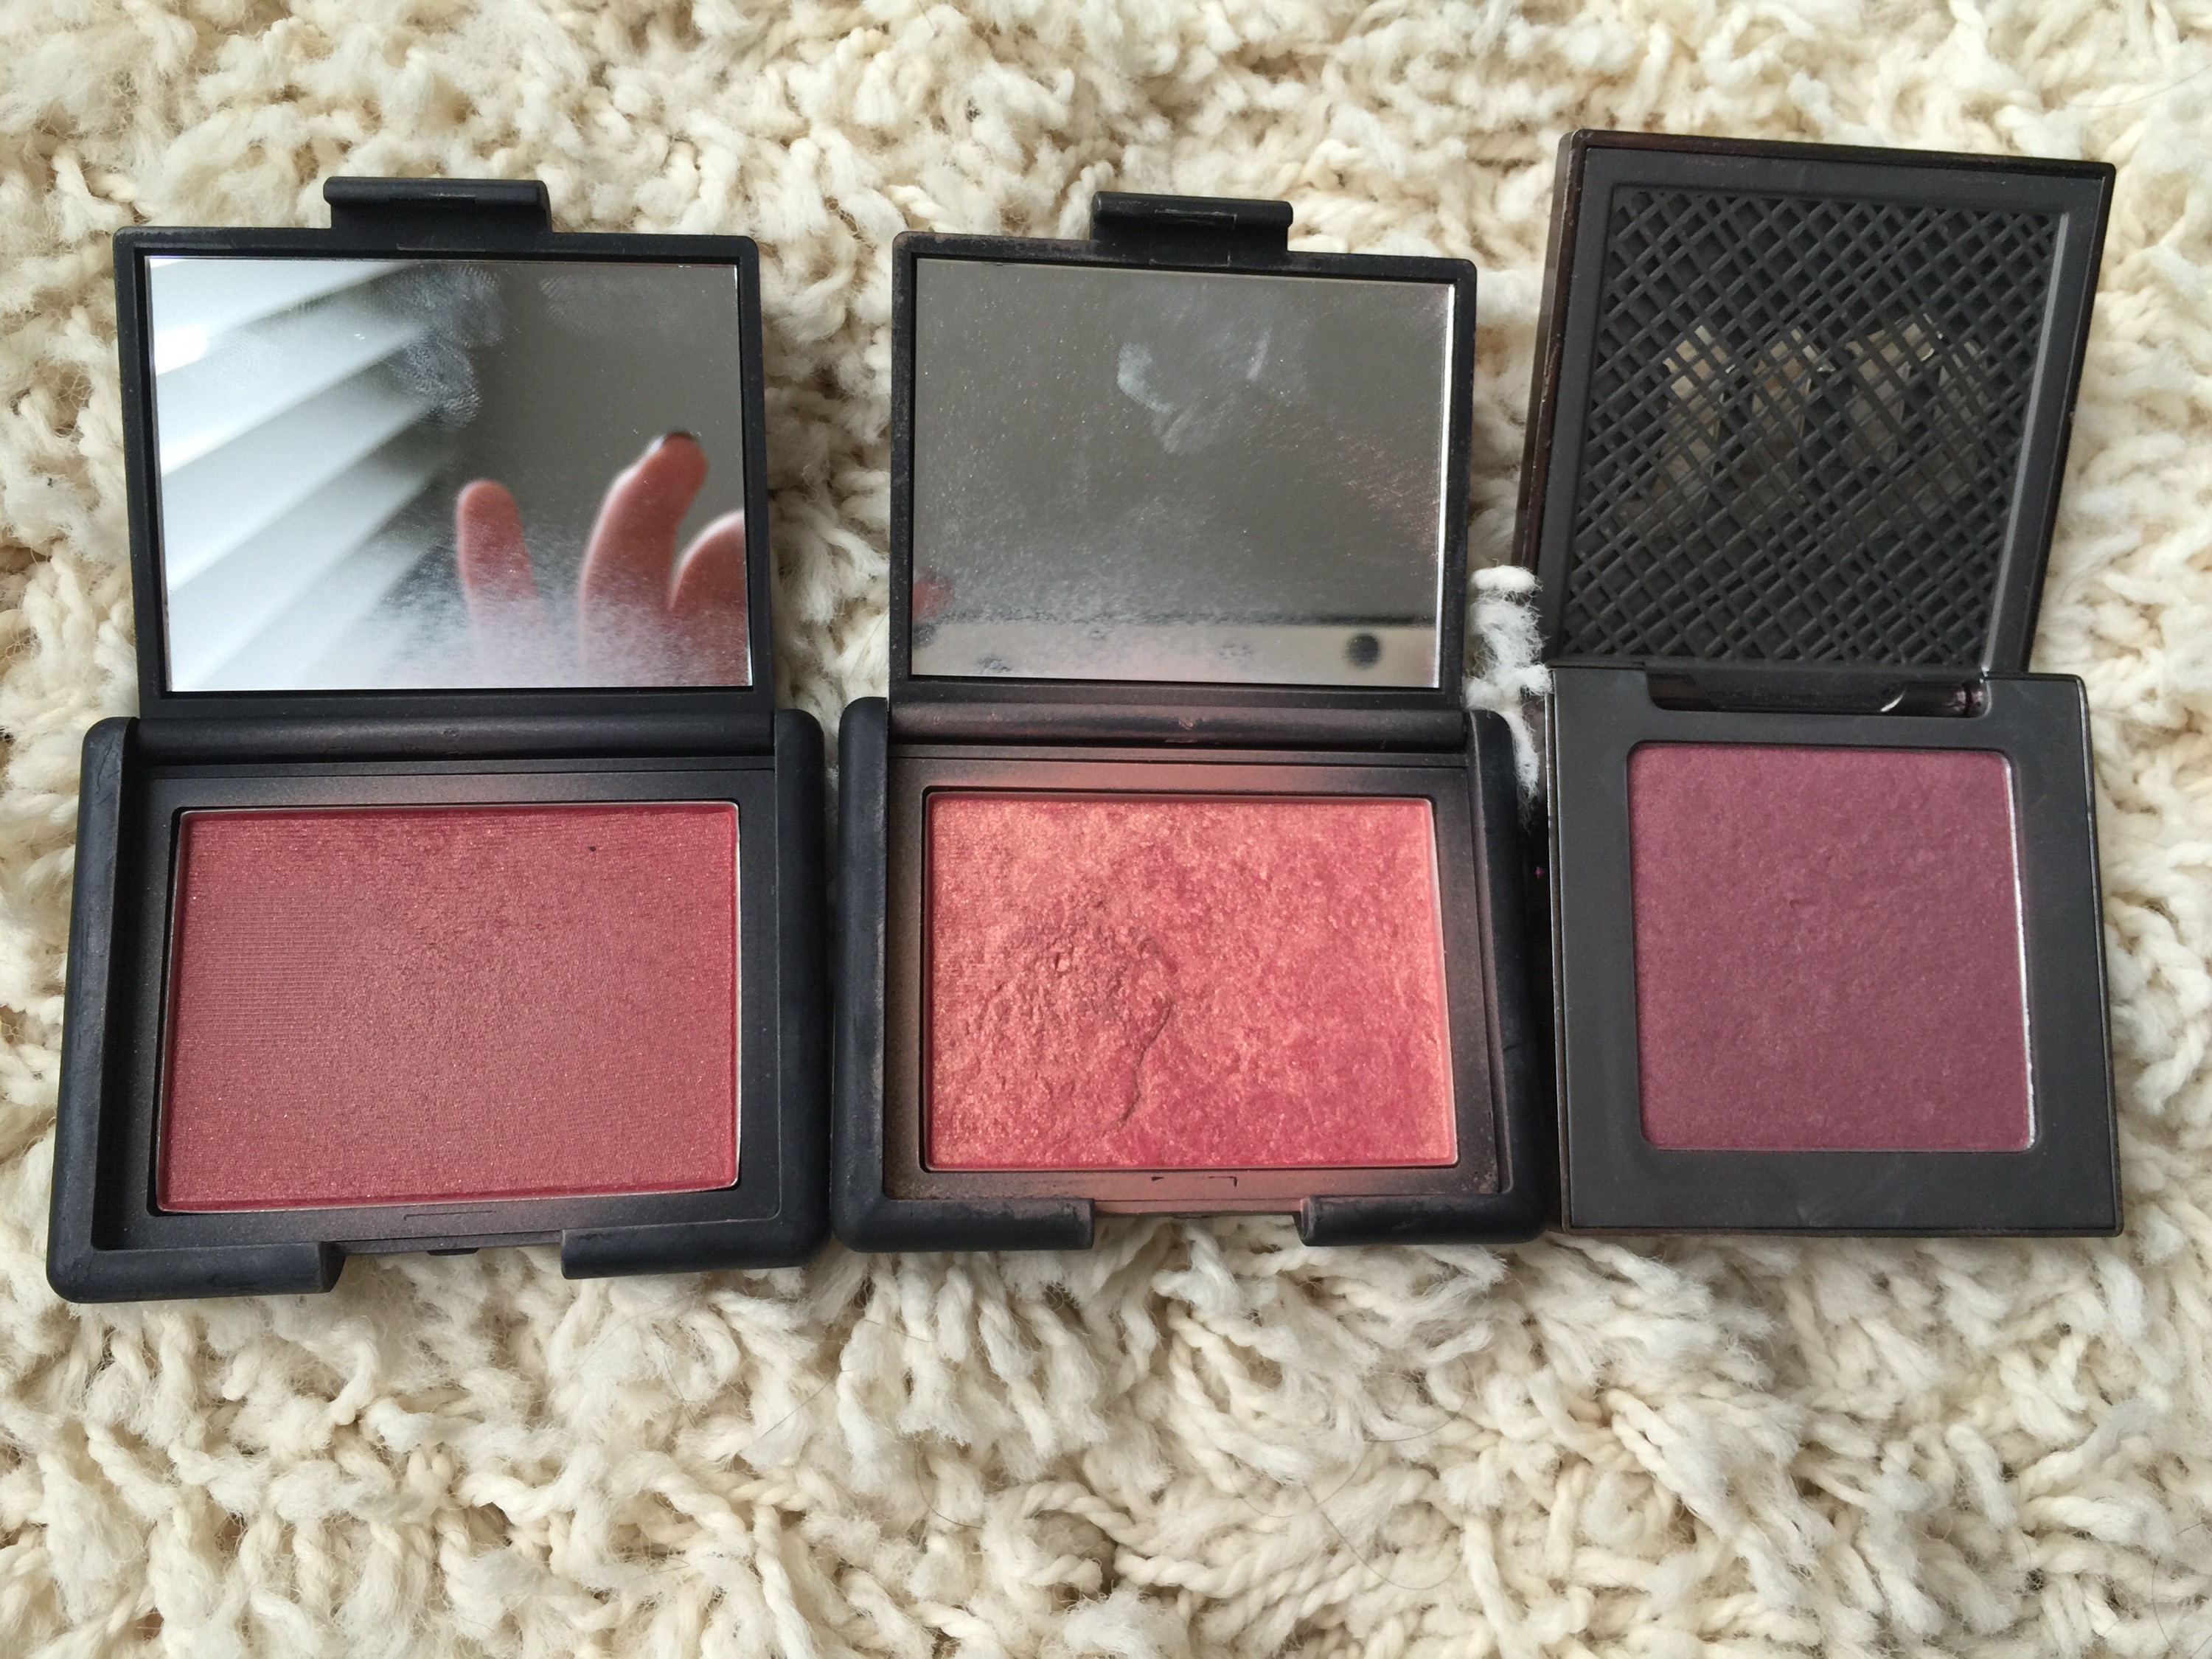 Nars Corissas Corner Blush On Original The Blushes That Got To Make Trip Have Also Been My Recent Go Tos Outlaw Is Such A Gorgeous Fall I Use It Constantly But So